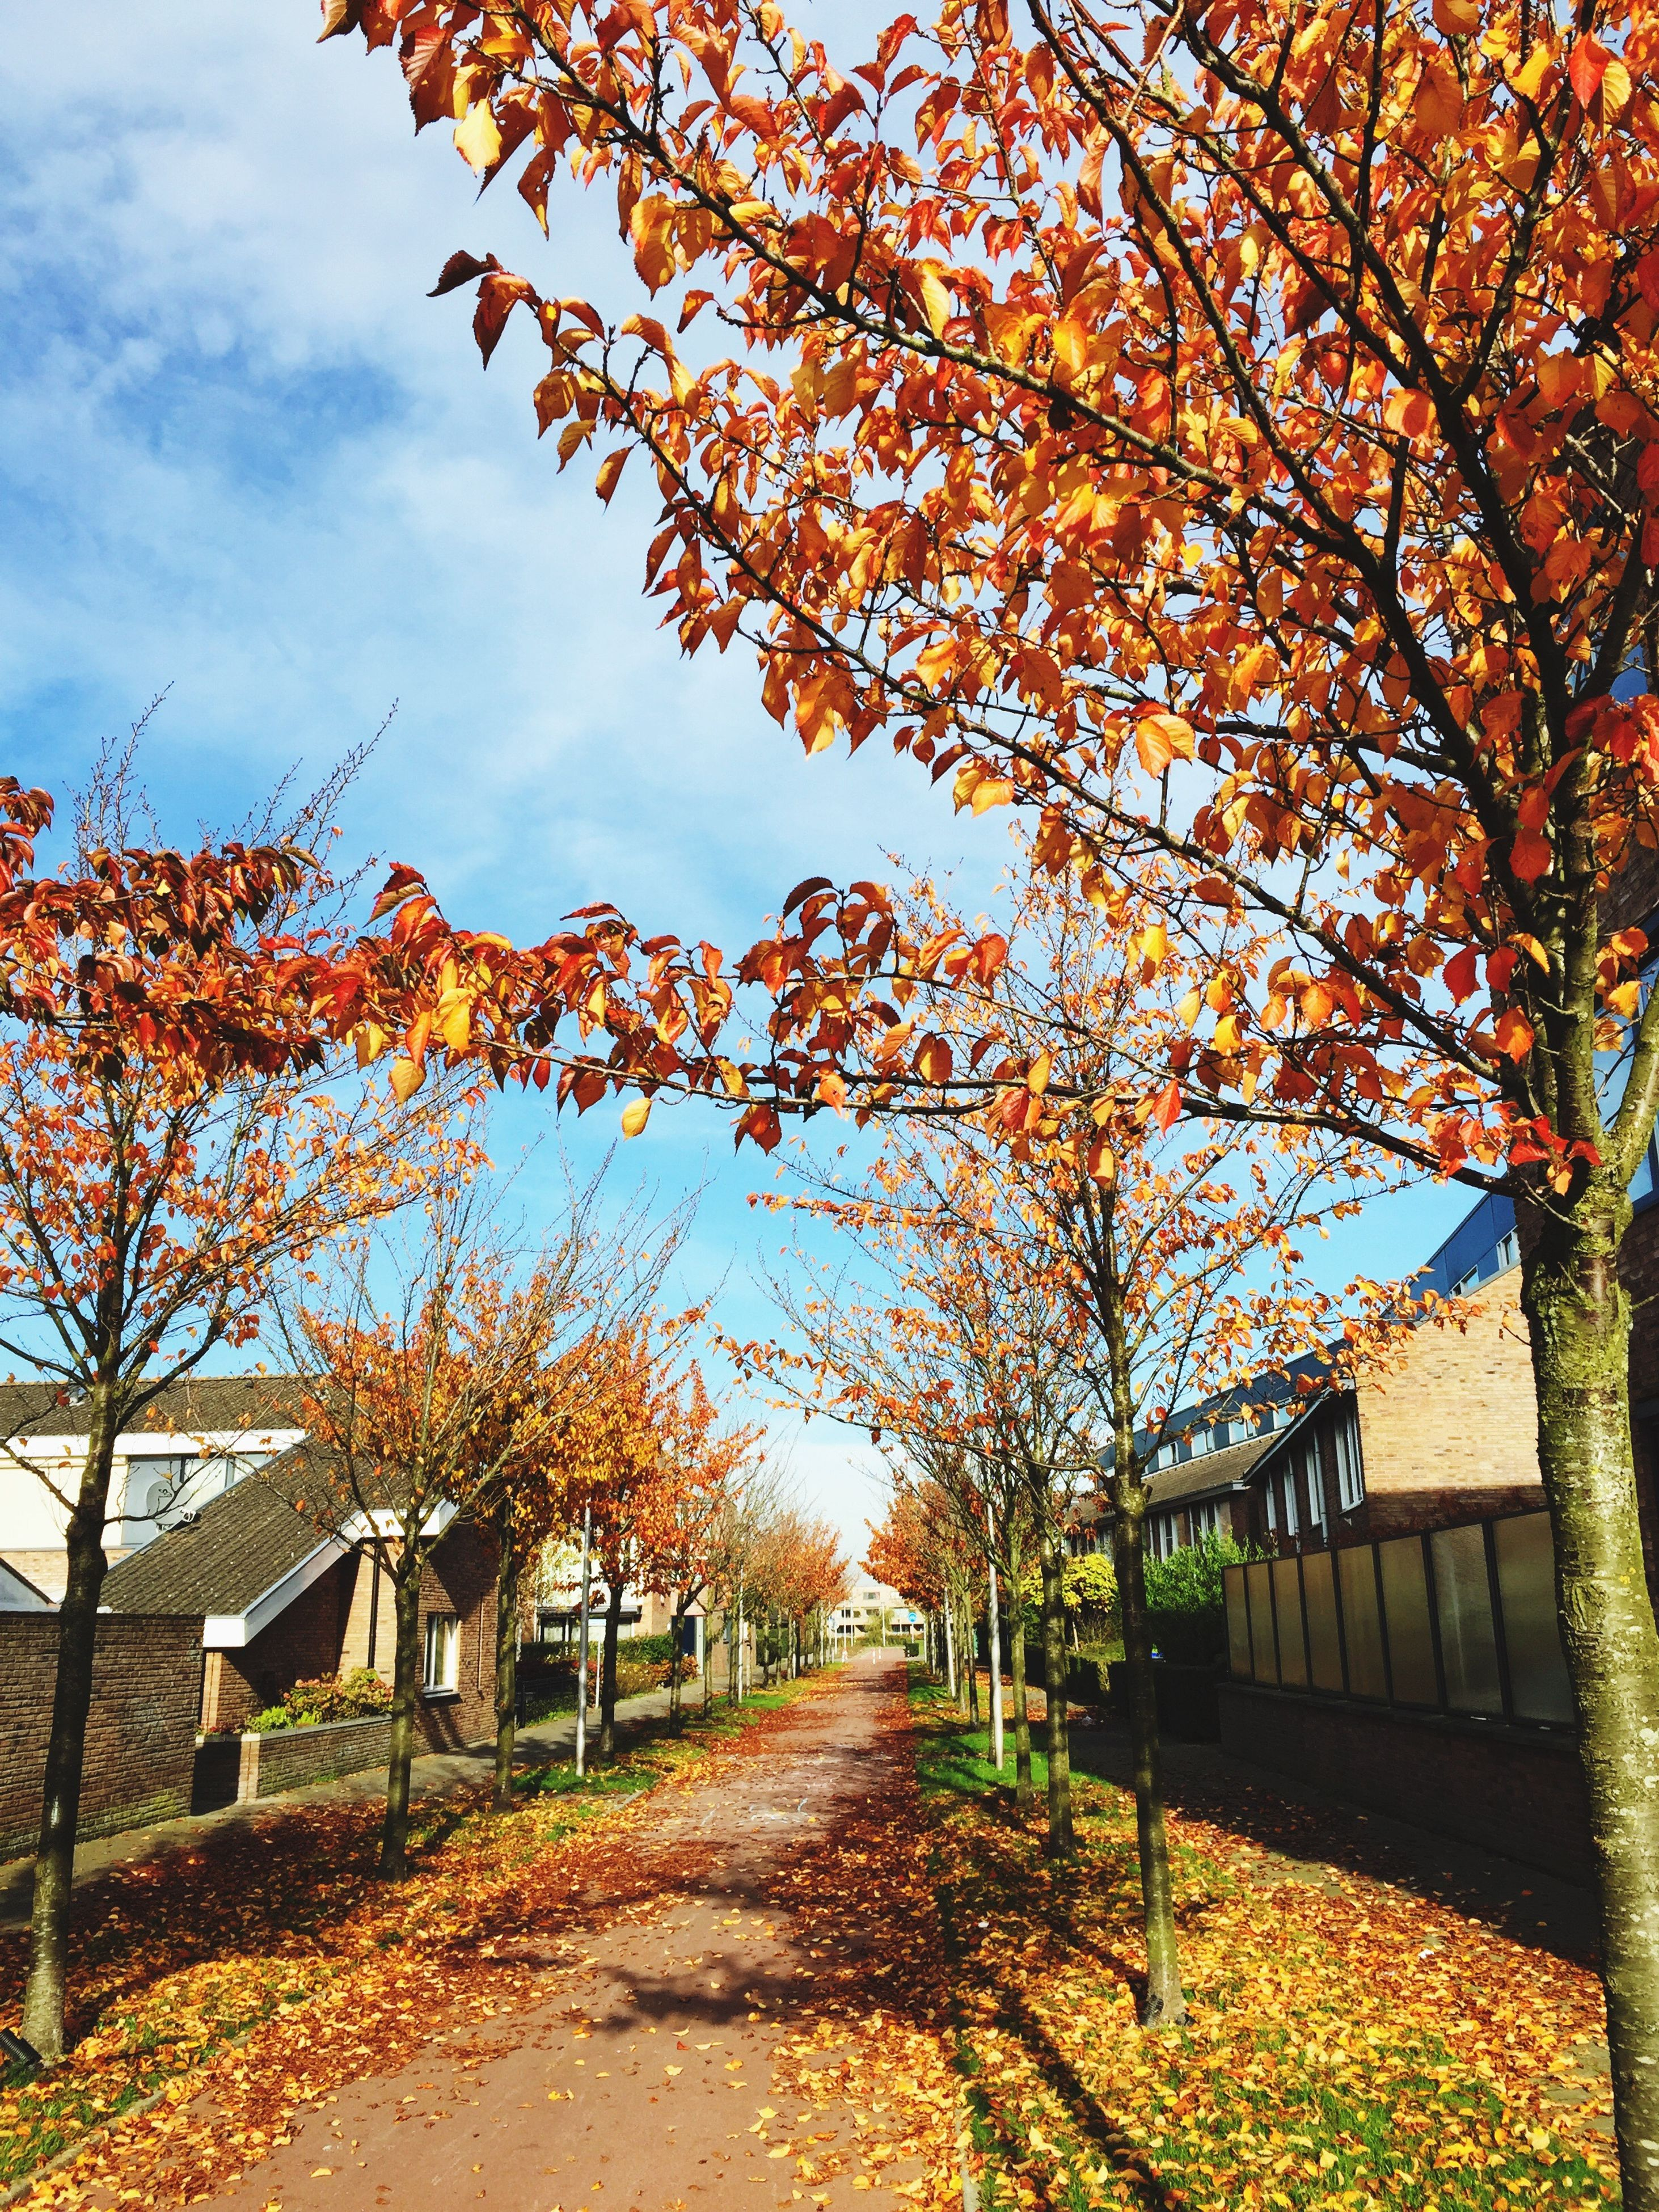 tree, autumn, change, built structure, architecture, building exterior, the way forward, sky, season, branch, footpath, house, growth, nature, orange color, beauty in nature, sunlight, tranquility, outdoors, leaf